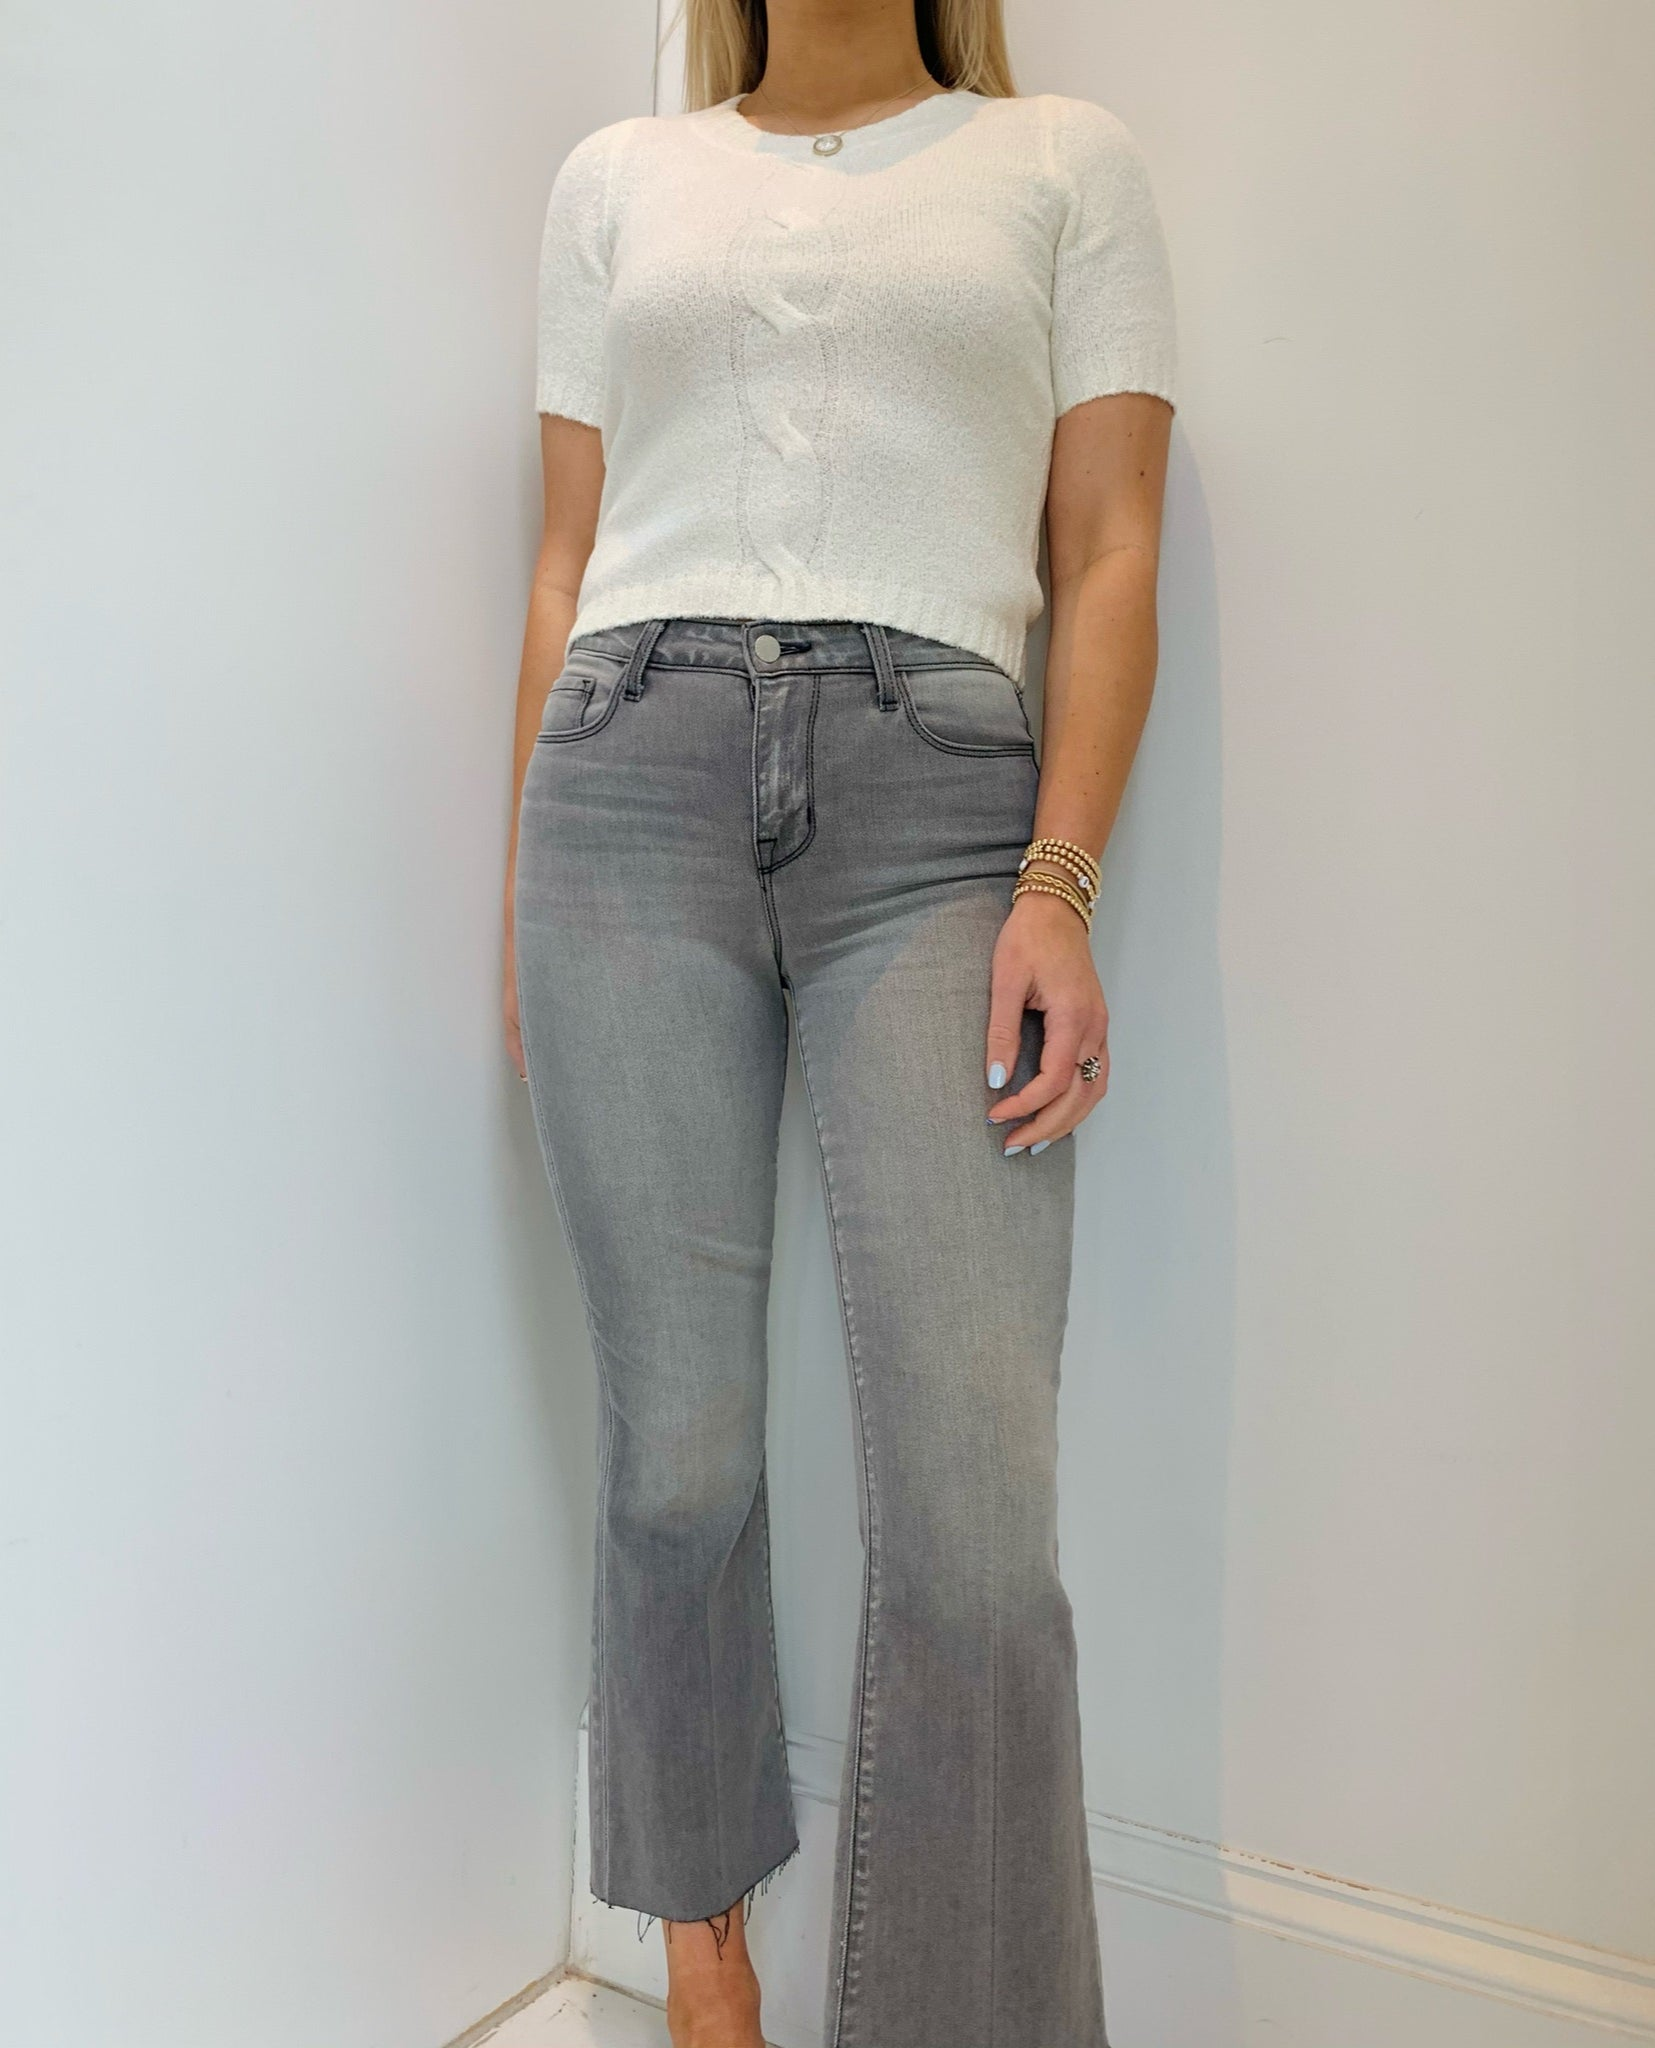 L'Agence - Kendra H/R Crop Flare - Misty Grey